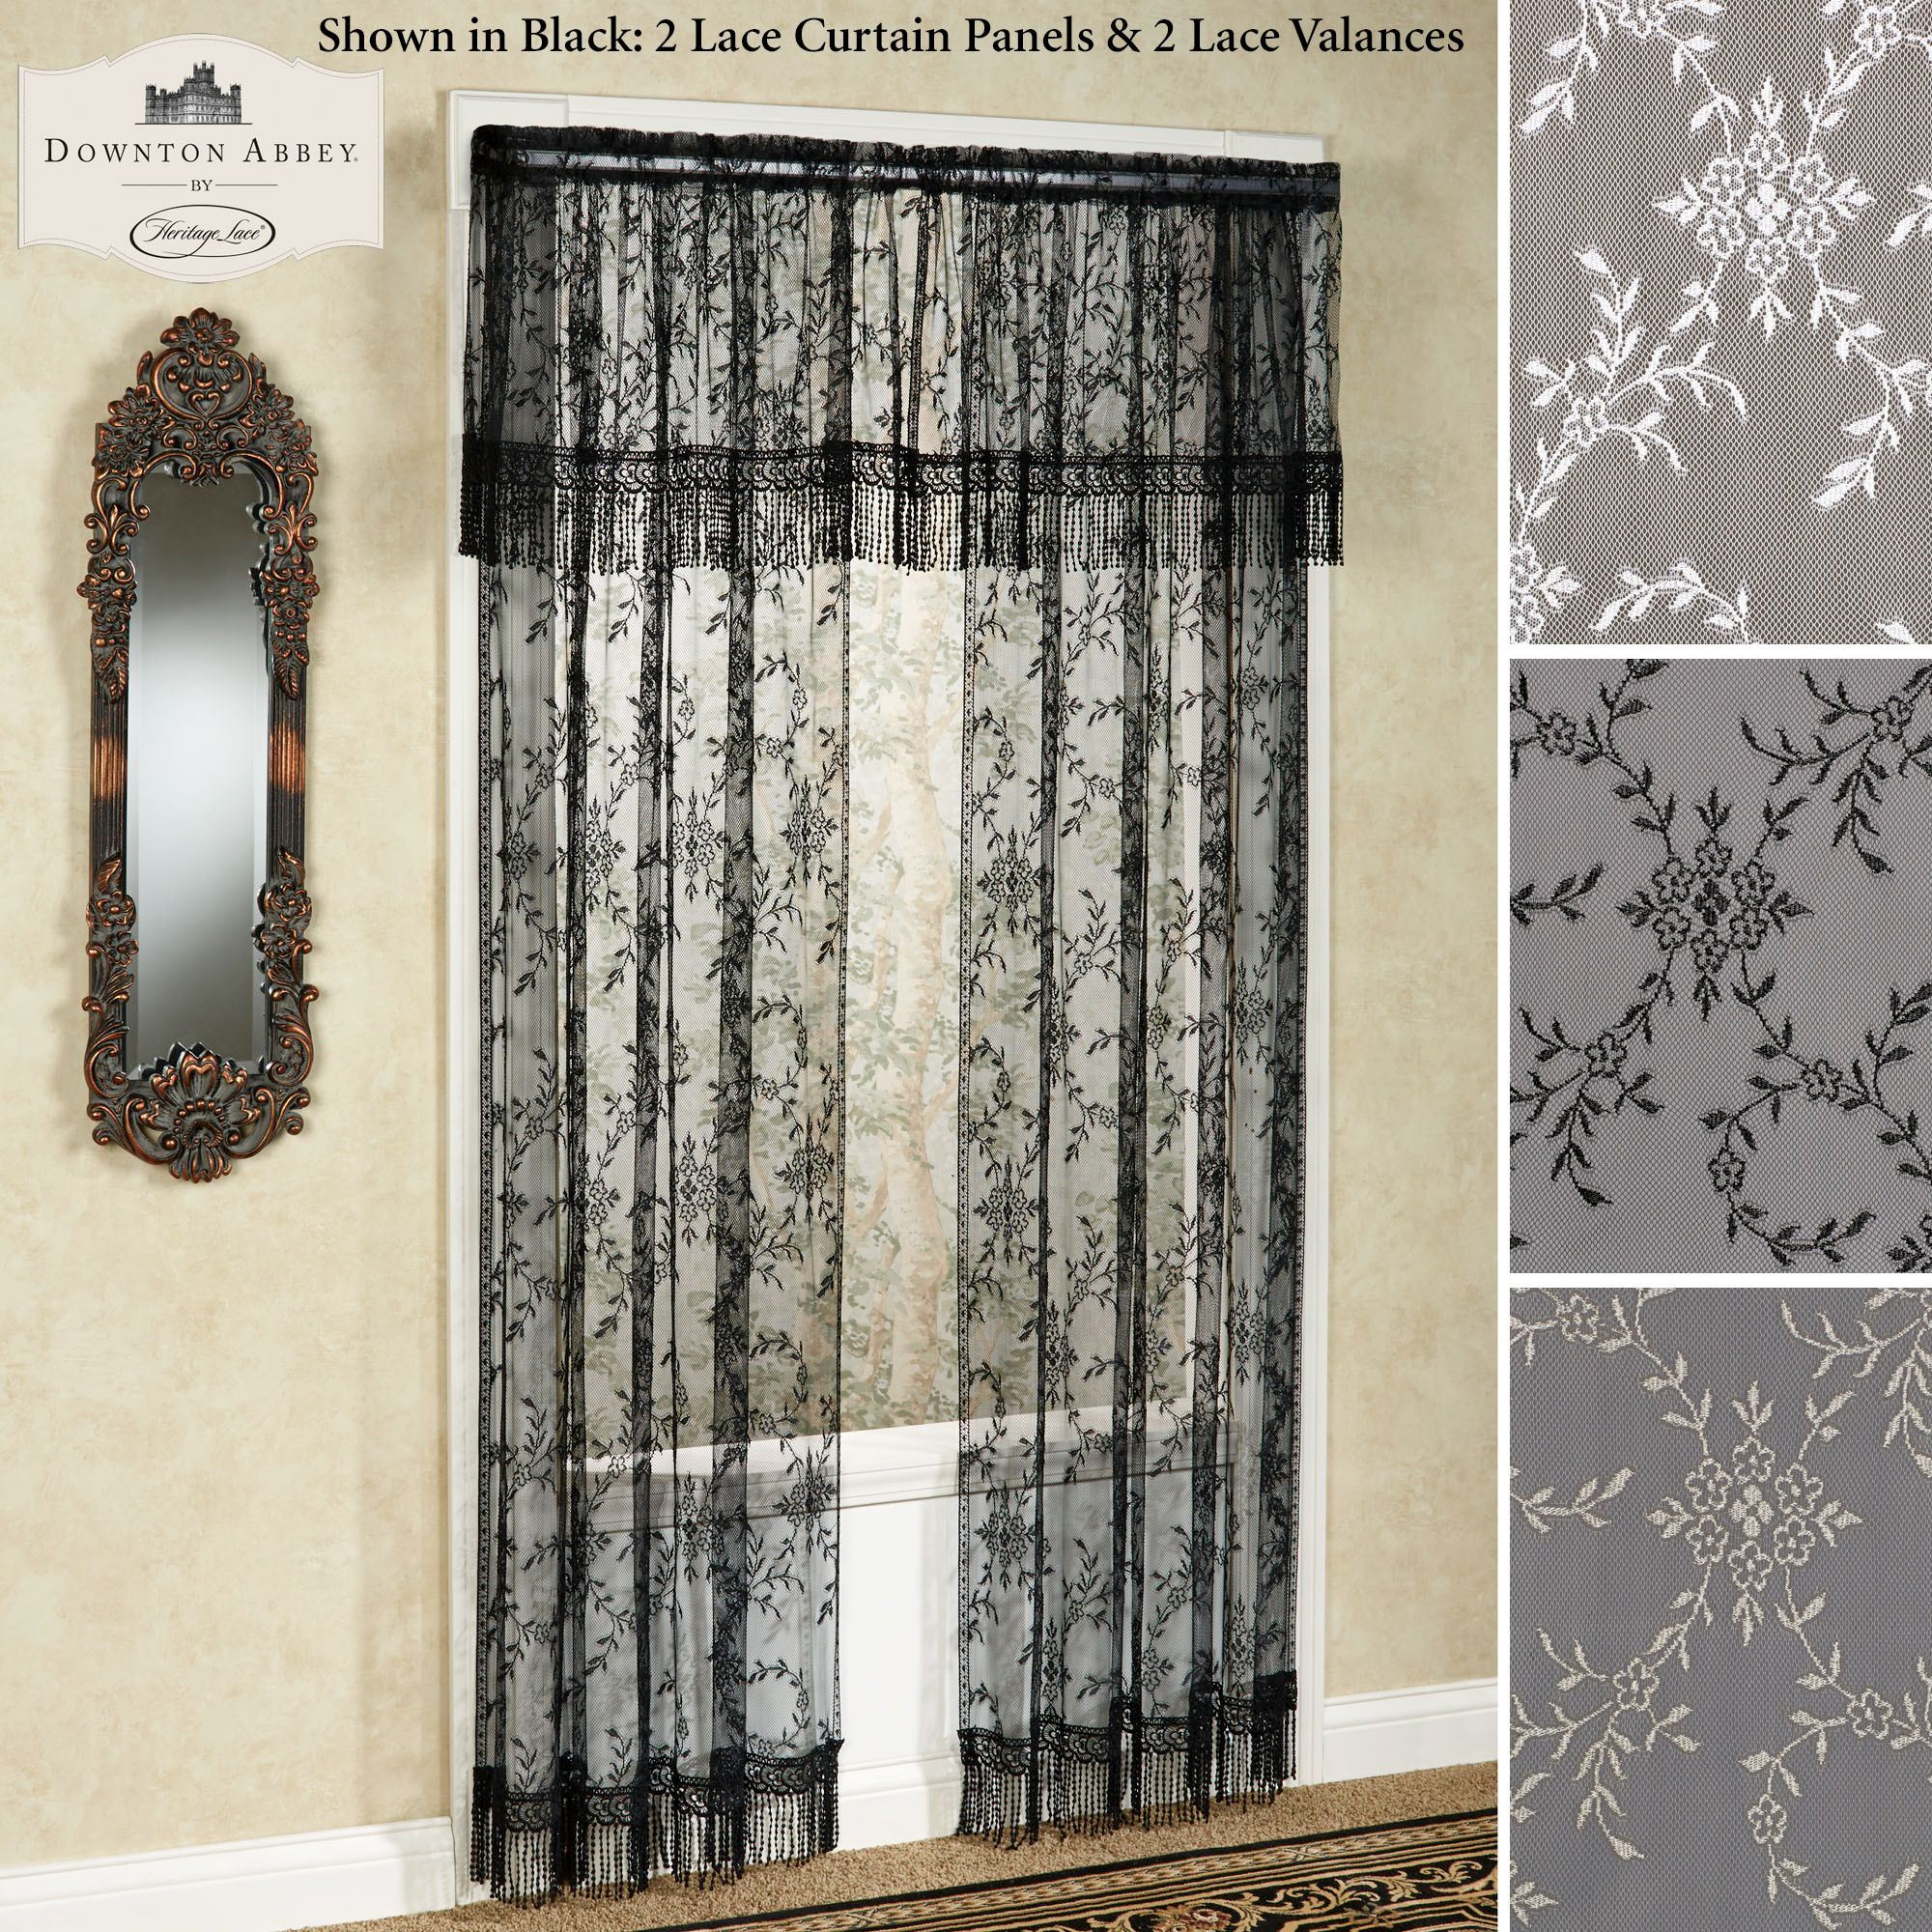 lace curtains yorkshire lace curtain panel KZMHIUR